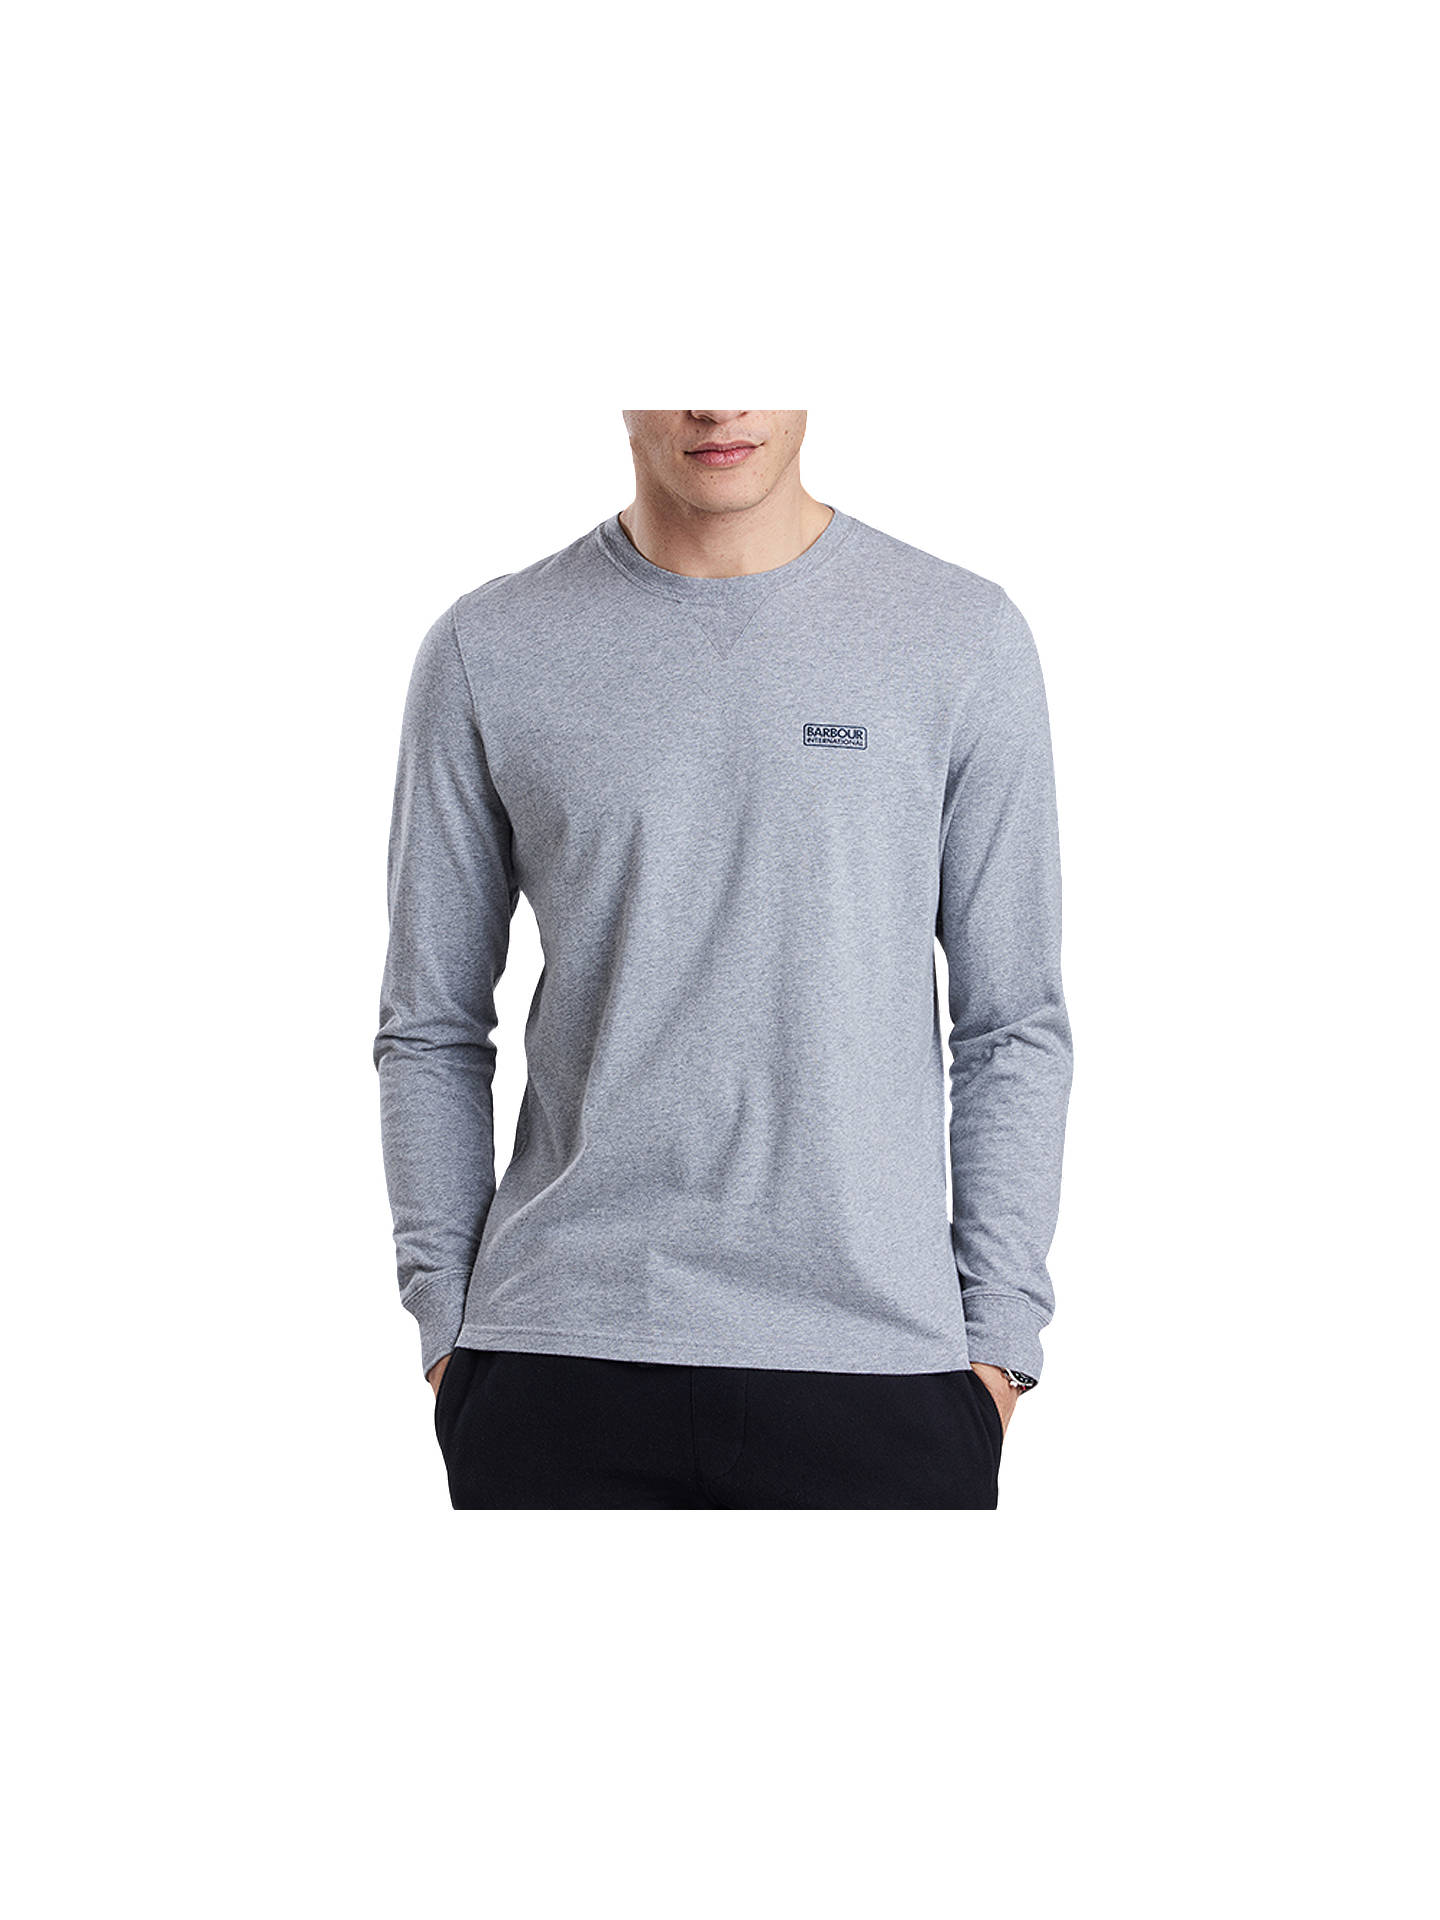 BuyBarbour Internationa Long Sleeve Logo T-Shirt, Grey, L Online at johnlewis.com